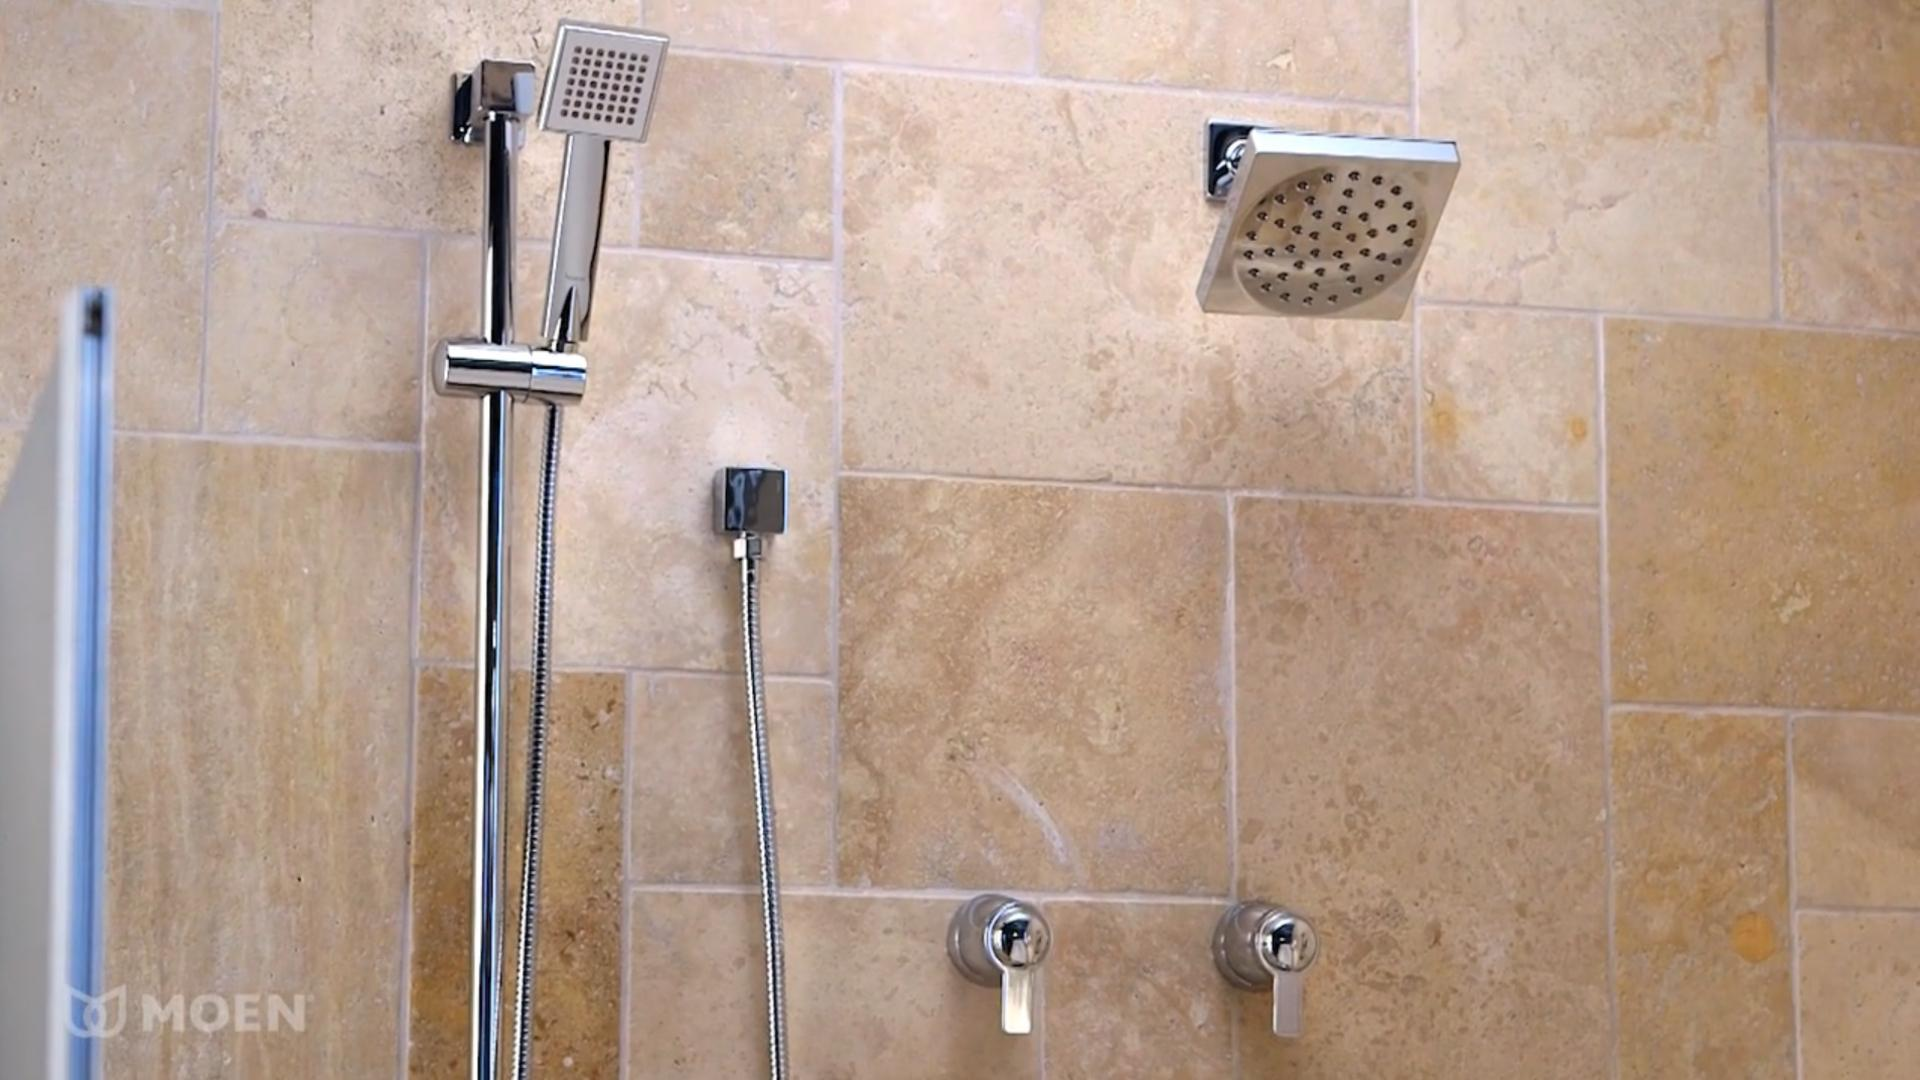 Moen 90 Degree Eco-Performance Handshower